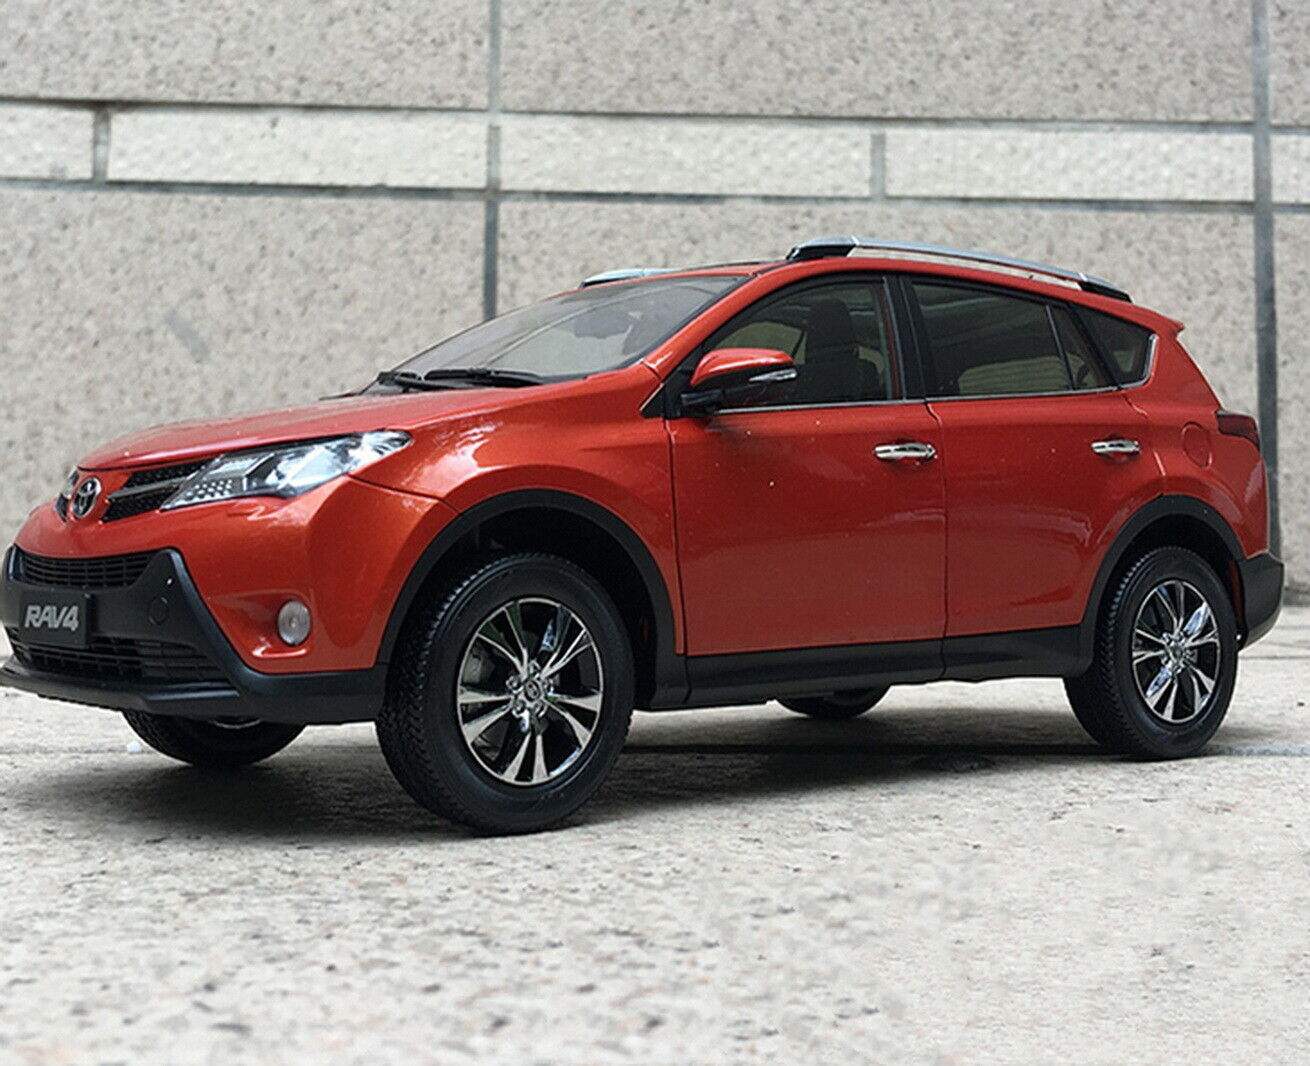 1 18 Scale Toyota RAV4 SUV 2015 arancia Diecast Car Model Toy Collection Gift